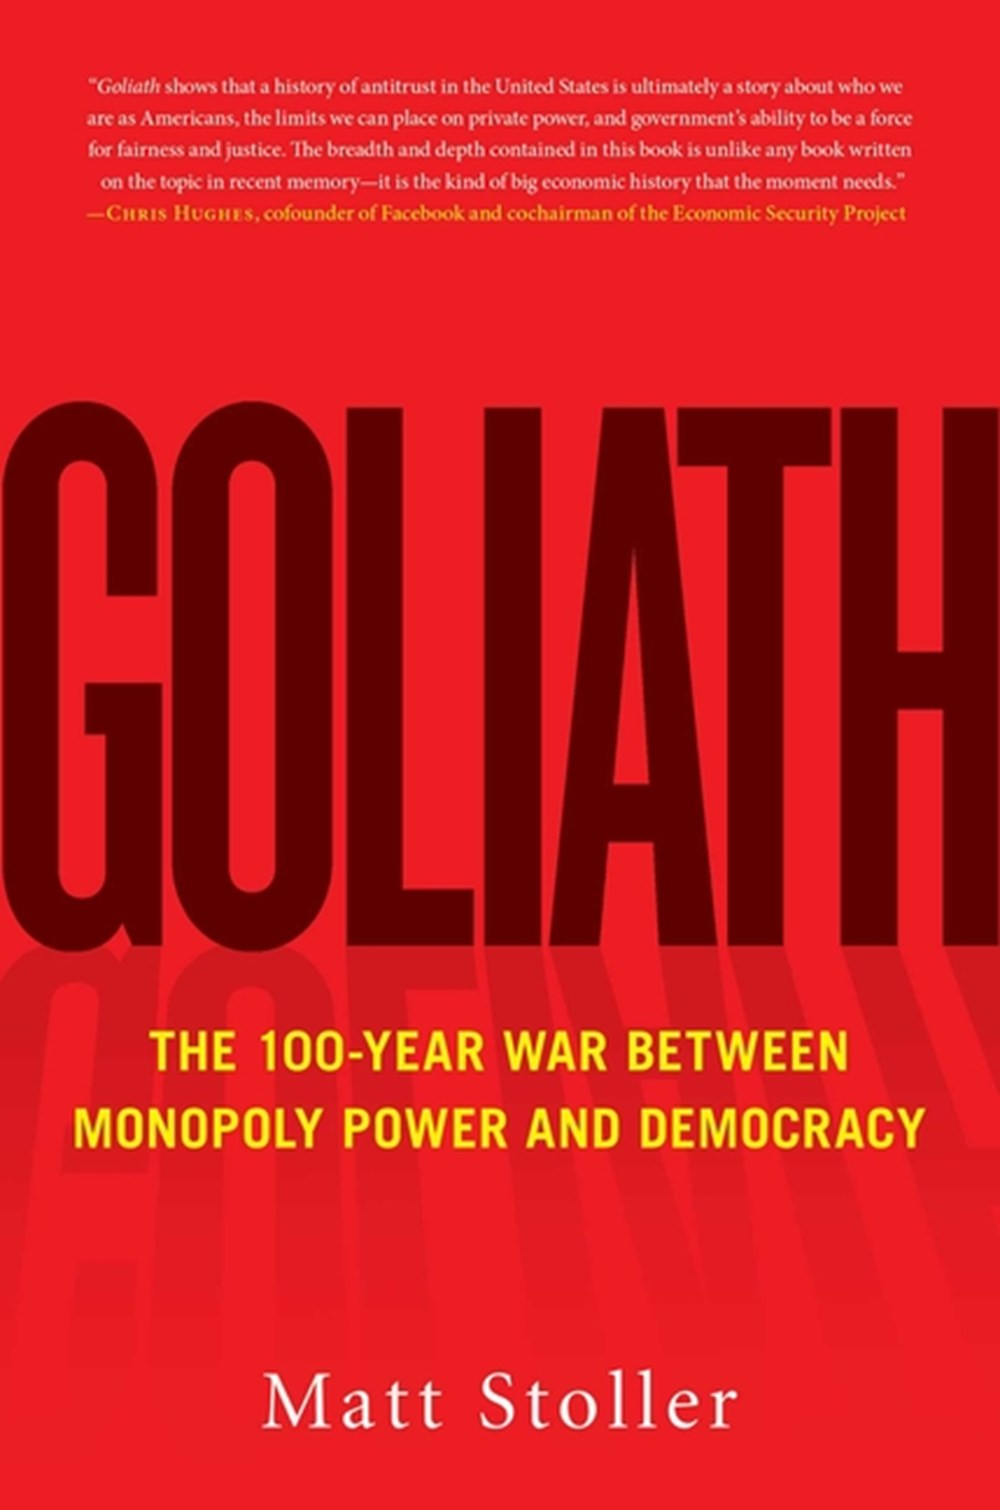 Goliath The 100-Year War Between Monopoly Power and Democracy